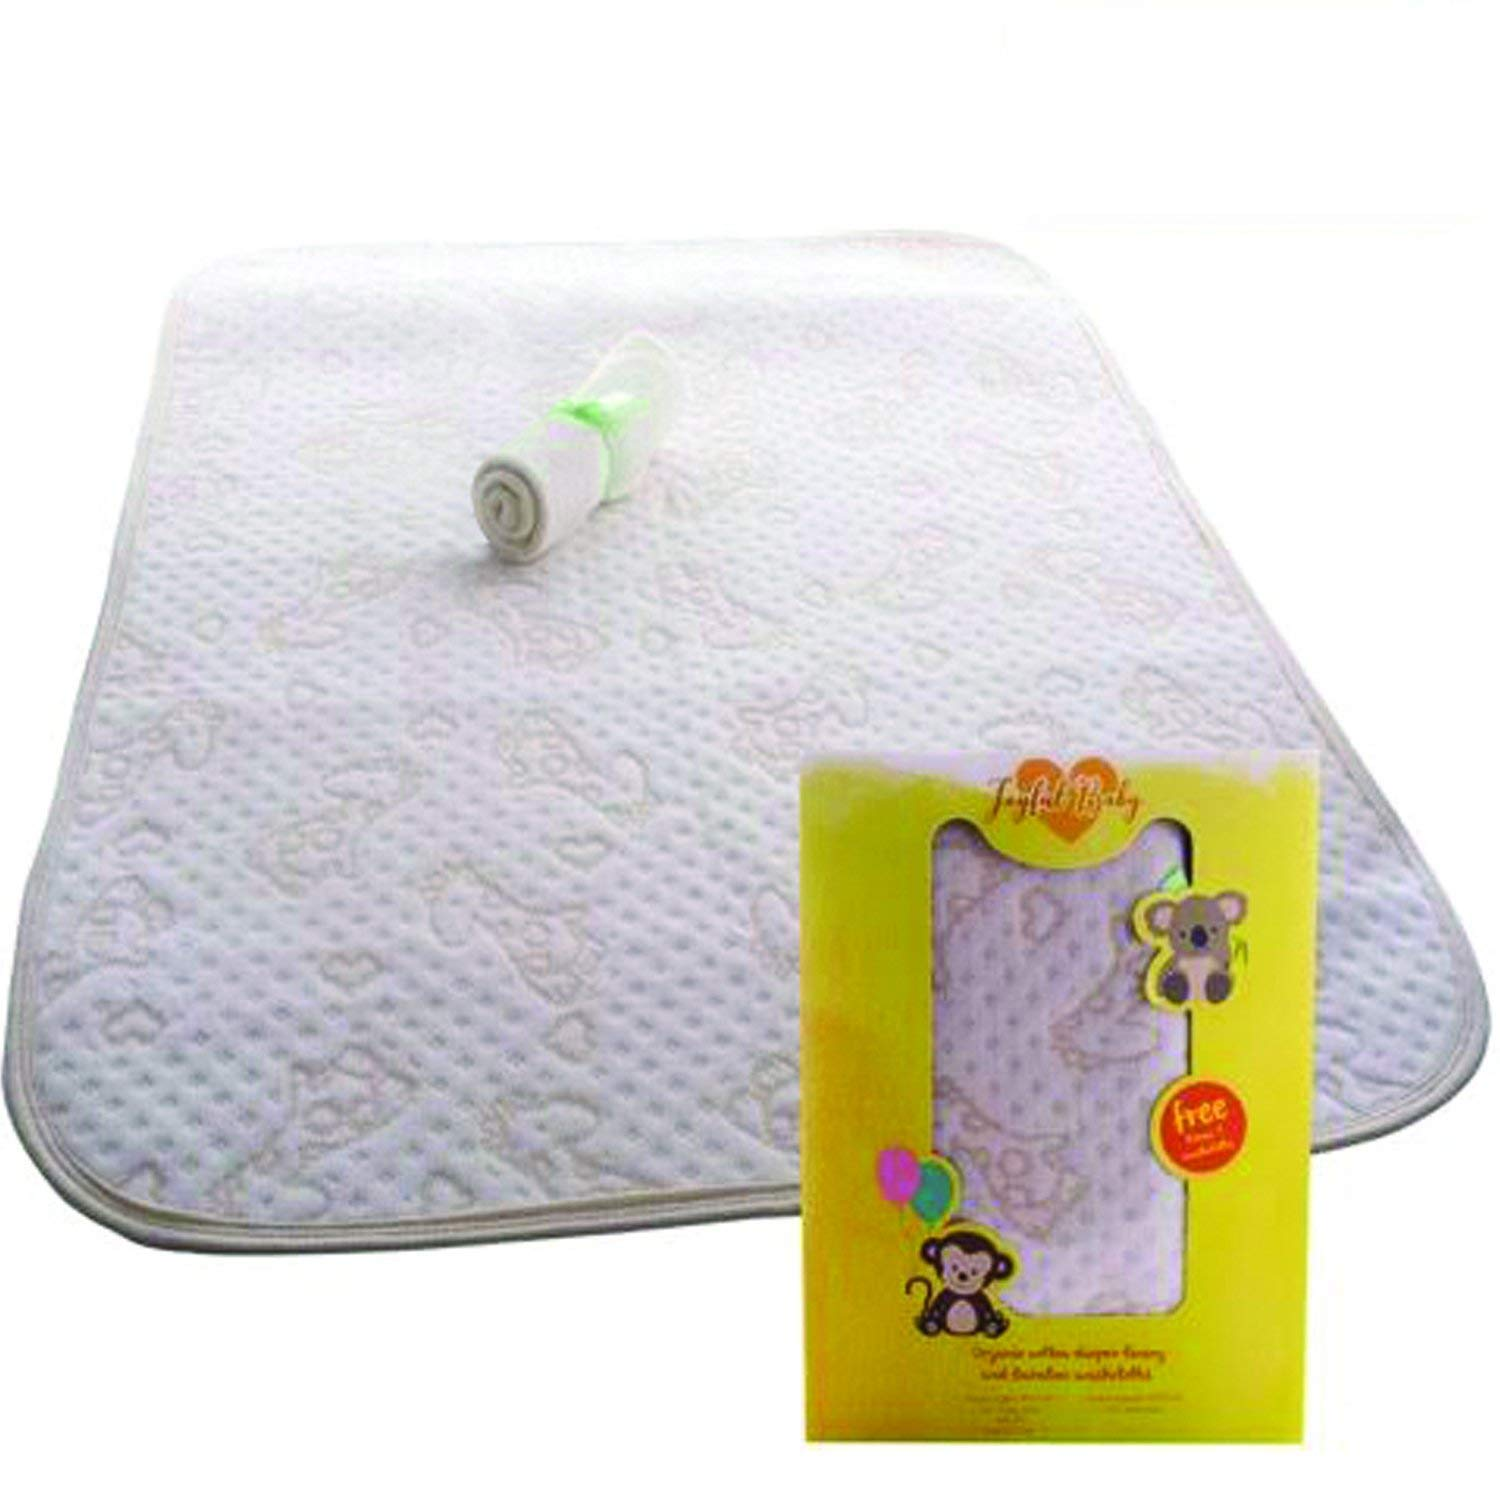 100% Organic Changing Pad Liner - Ultra Premium, No Chemical Dyes, Extra Thick, Long & Wide - Portable and Waterproof Joyful Baby